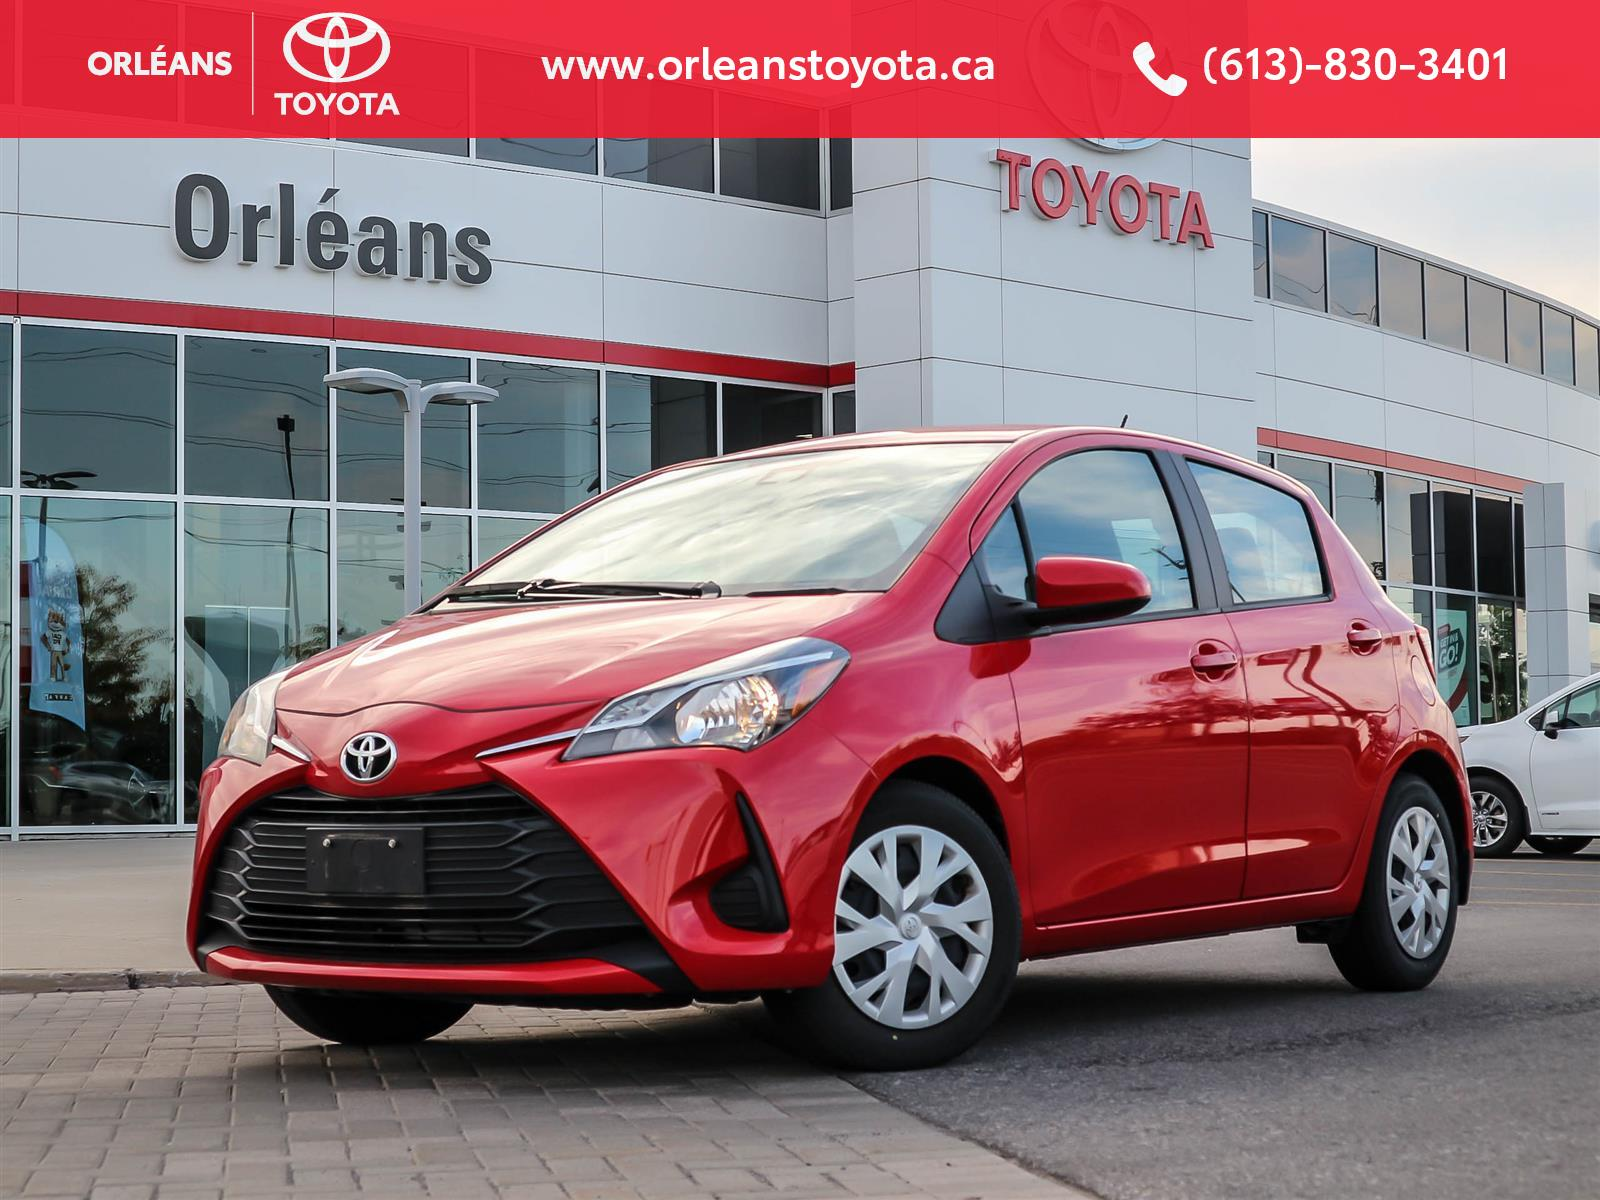 2018 Toyota Yaris at Orleans Toyota